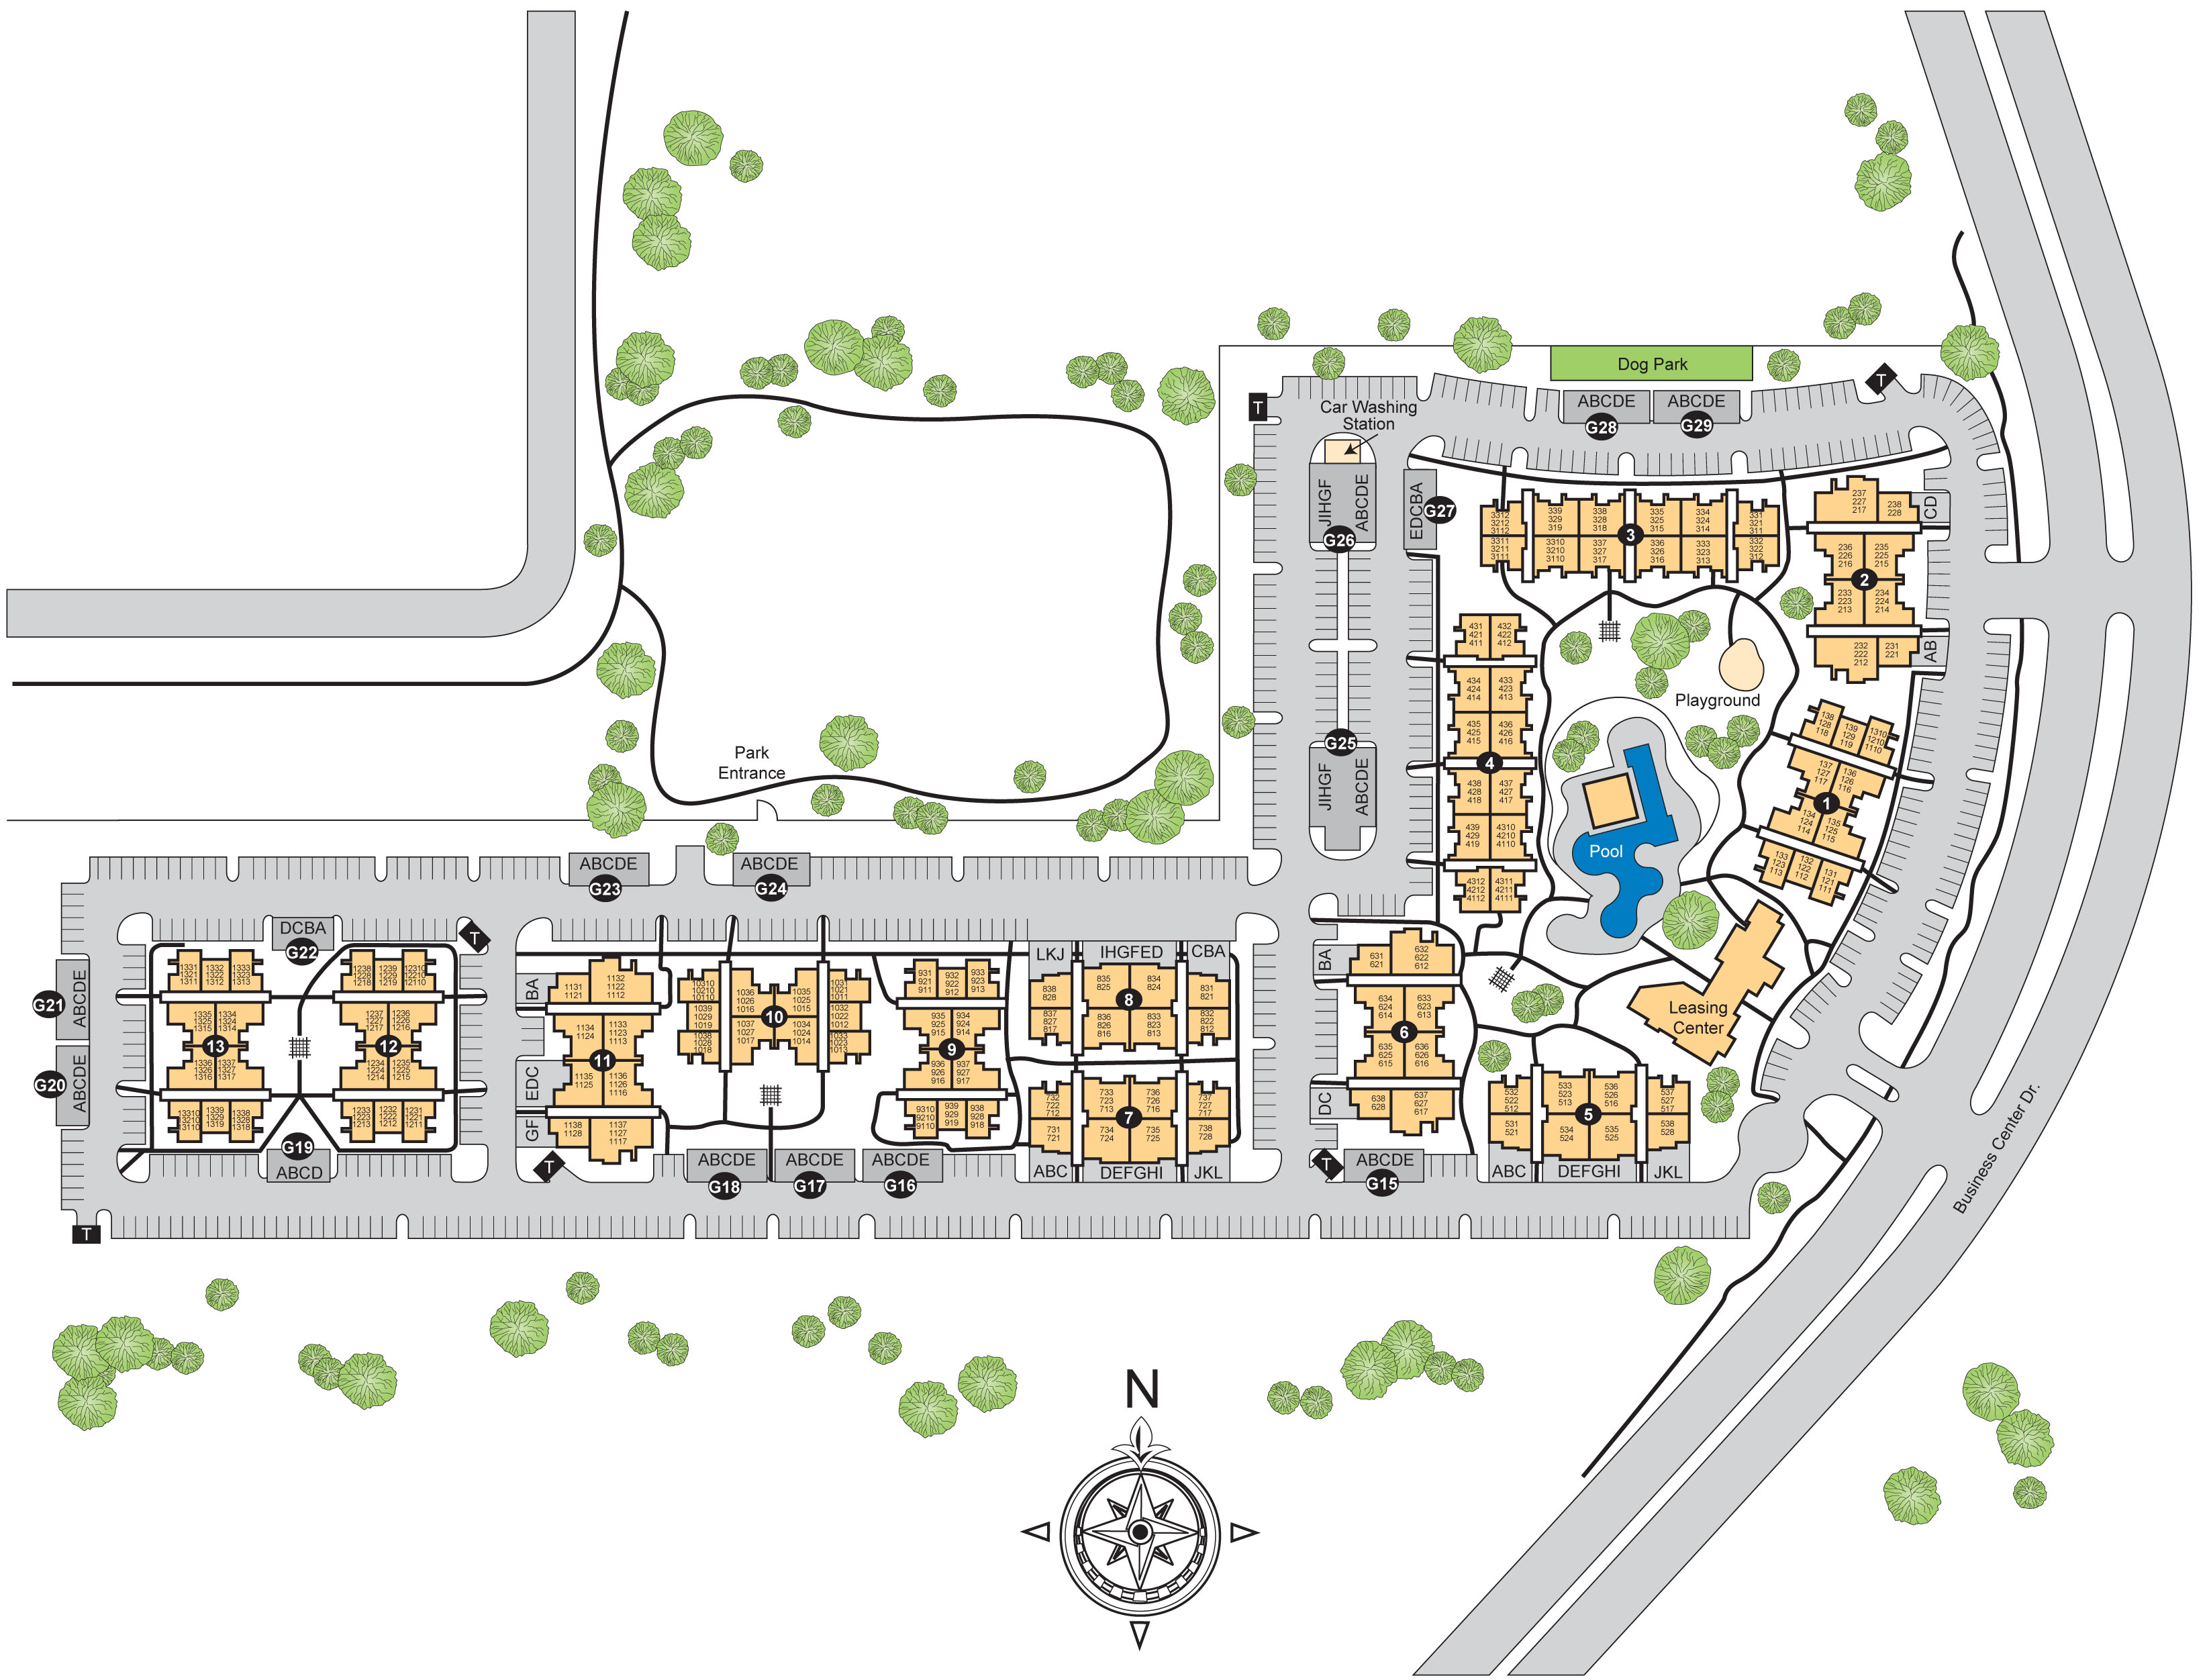 4 Bedroom Apartments Pearland Texas - Site plan